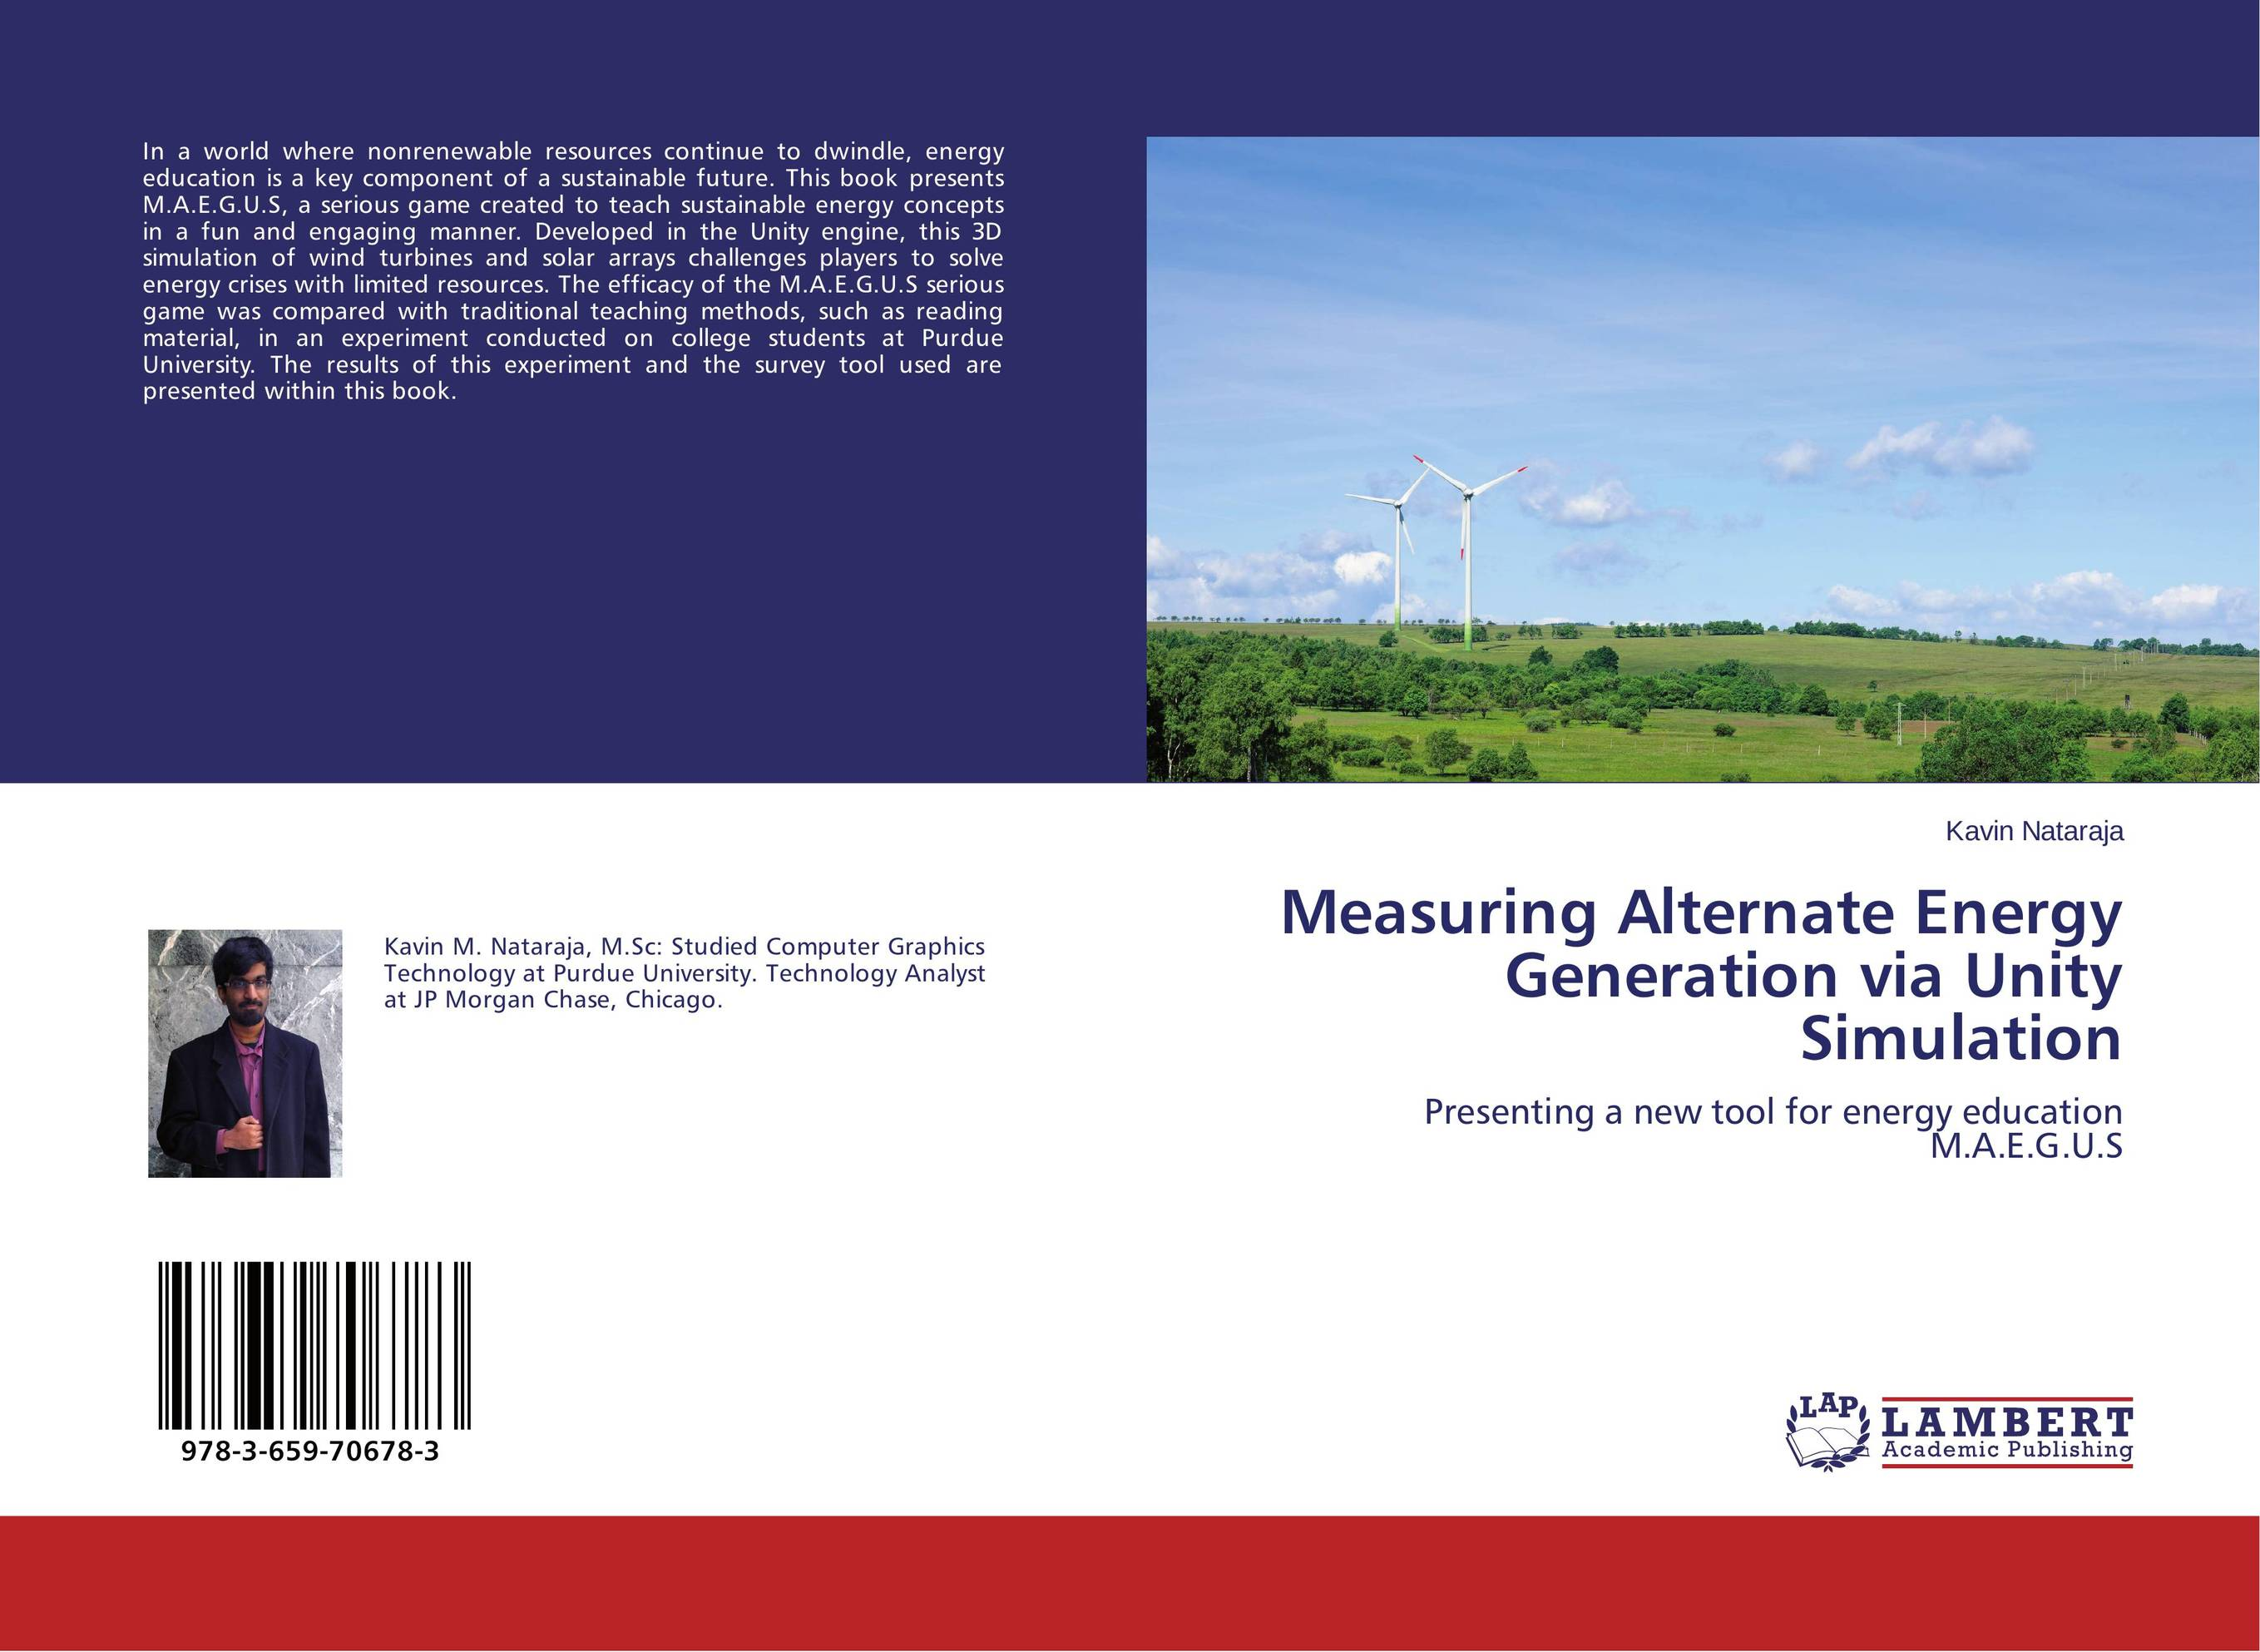 Measuring Alternate Energy Generation via Unity Simulation solar energy modelling and assessing photovoltaic energy